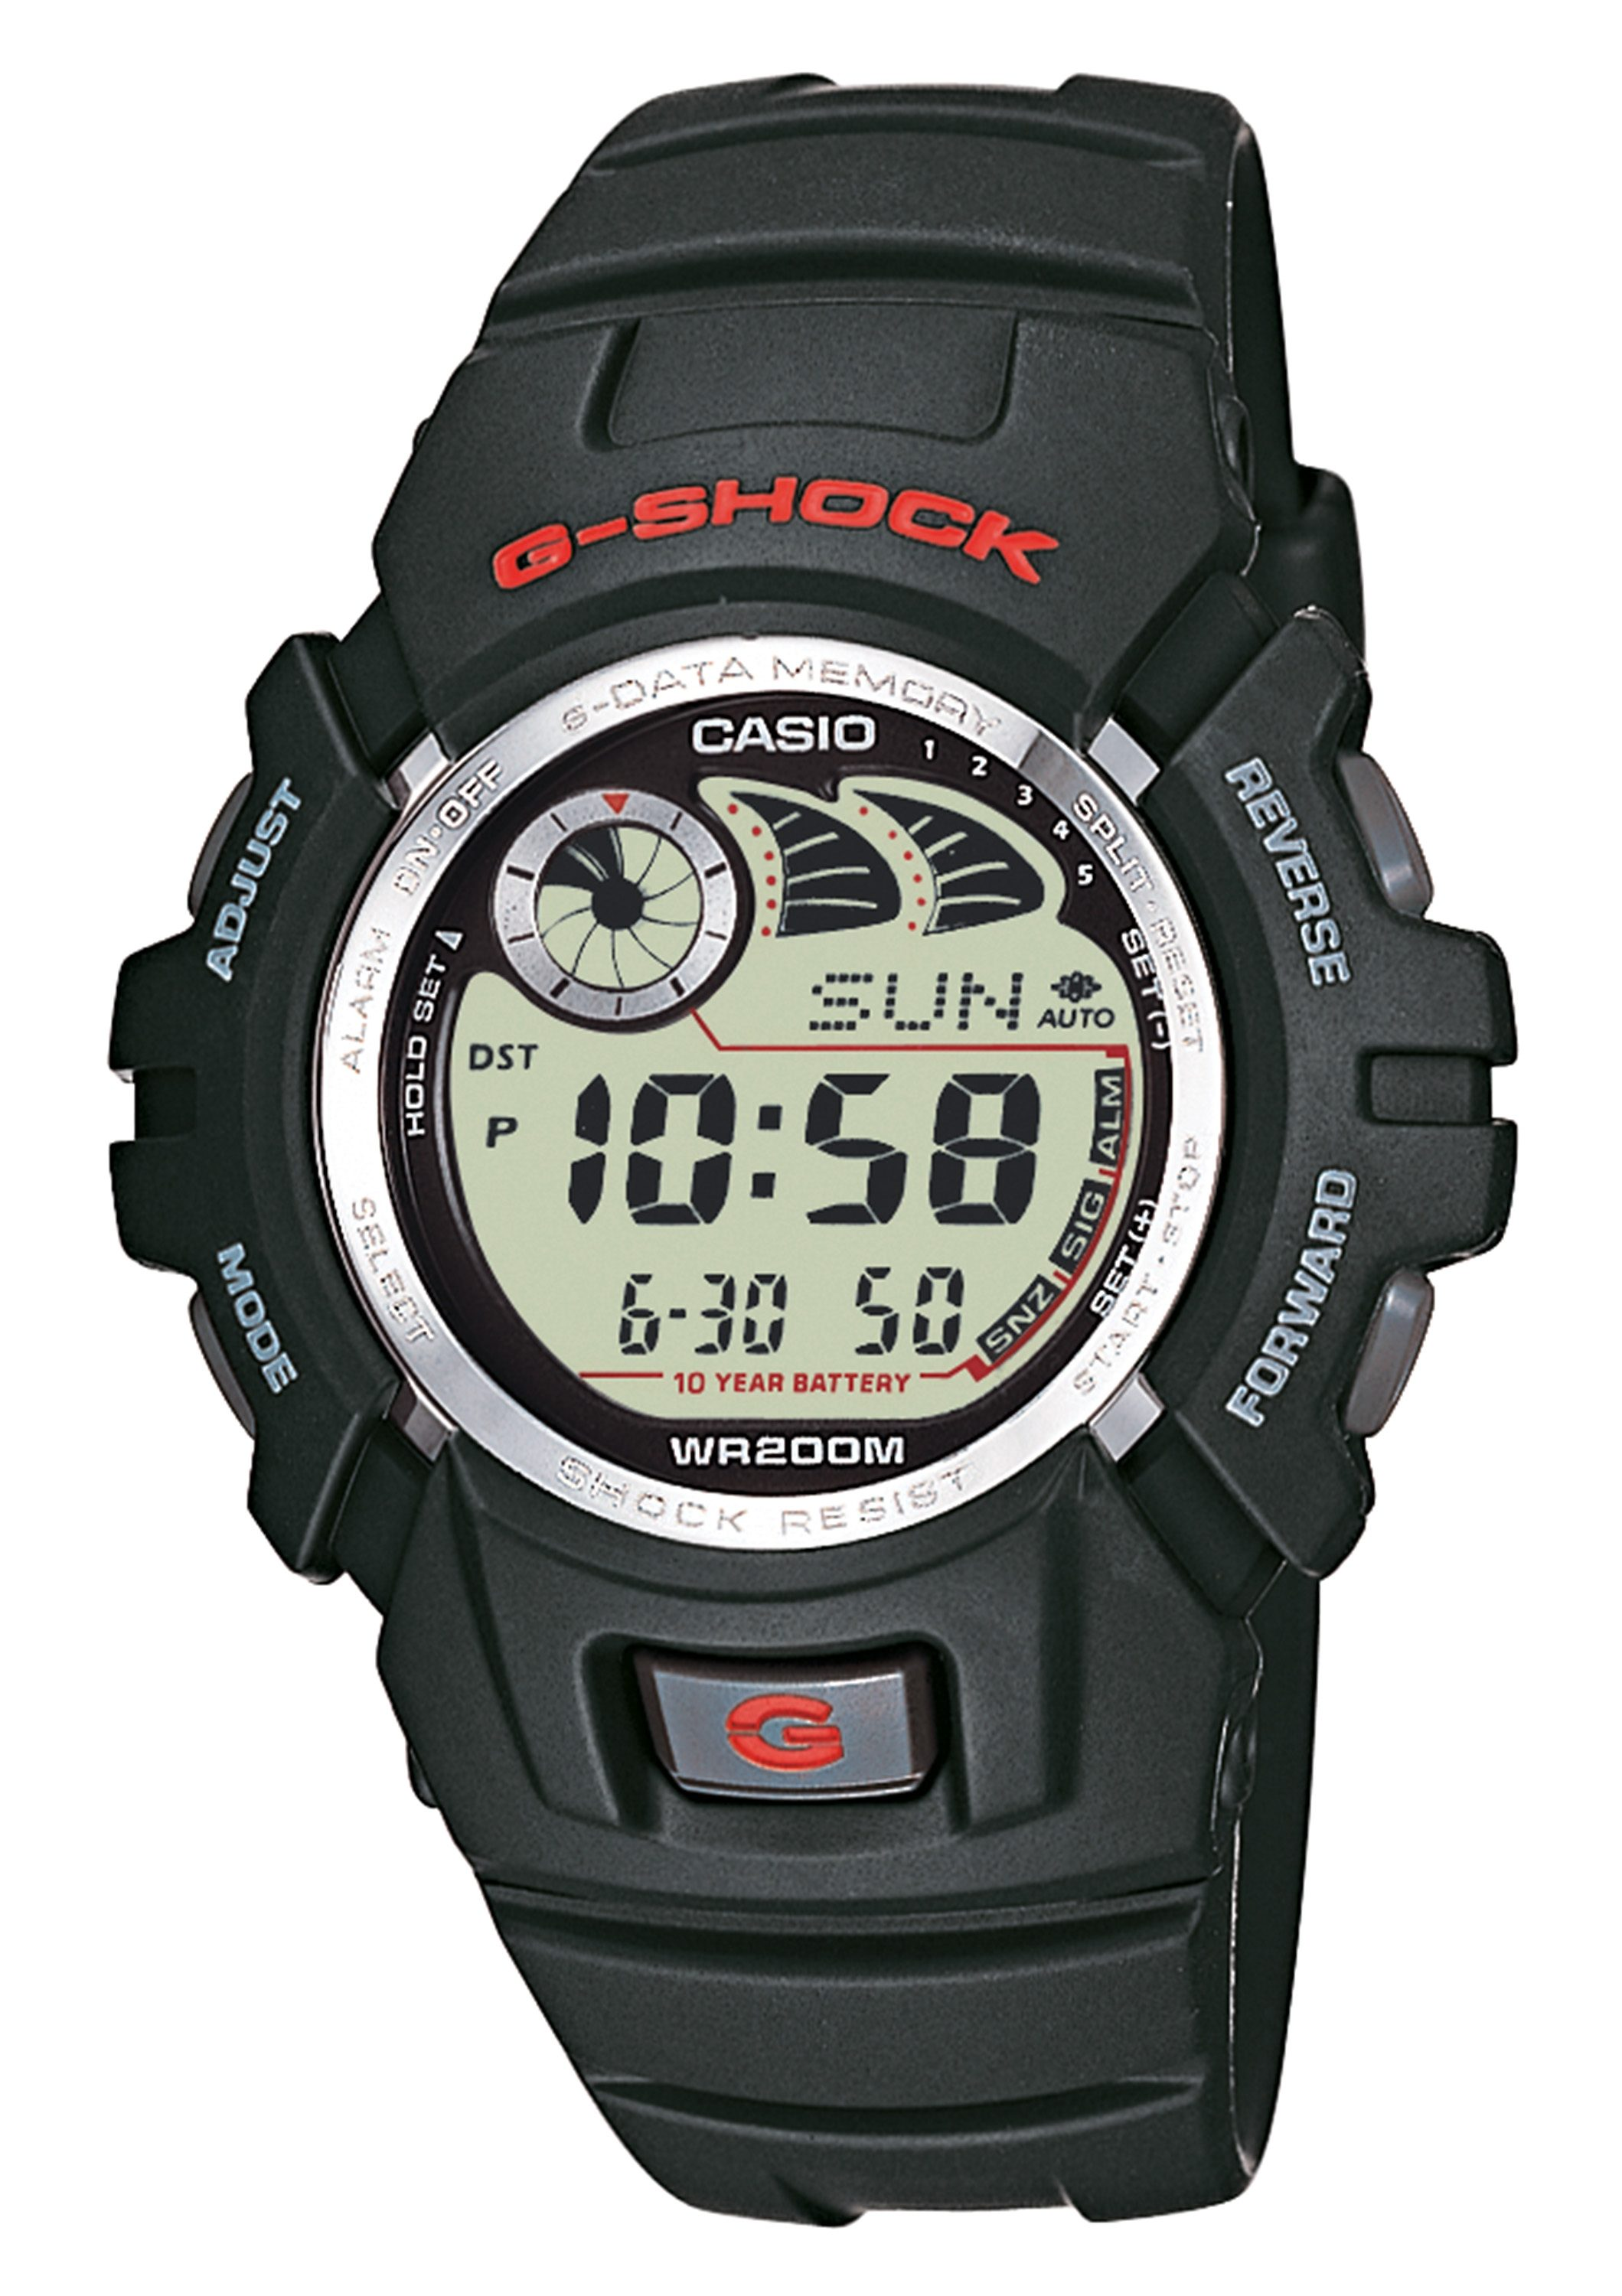 Casio G-Shock Chronograph »G-2900F-1VER«